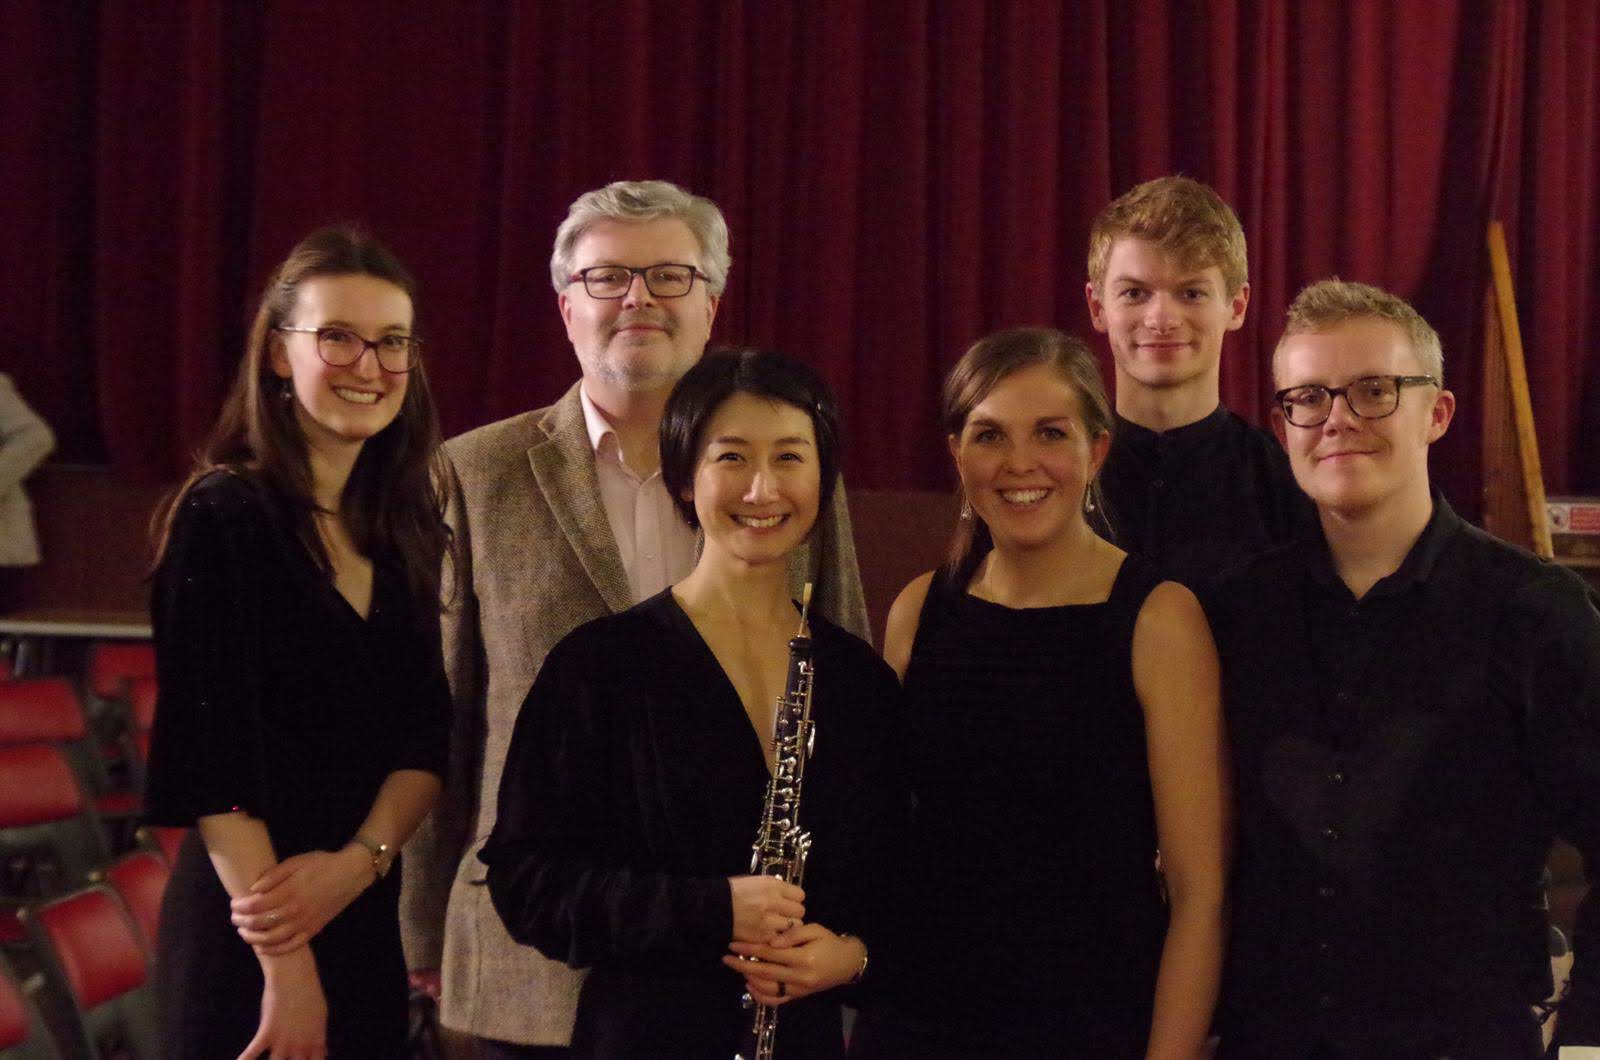 Magnard Ensemble with Sir James Macmillan at West Kilbride, Scotland